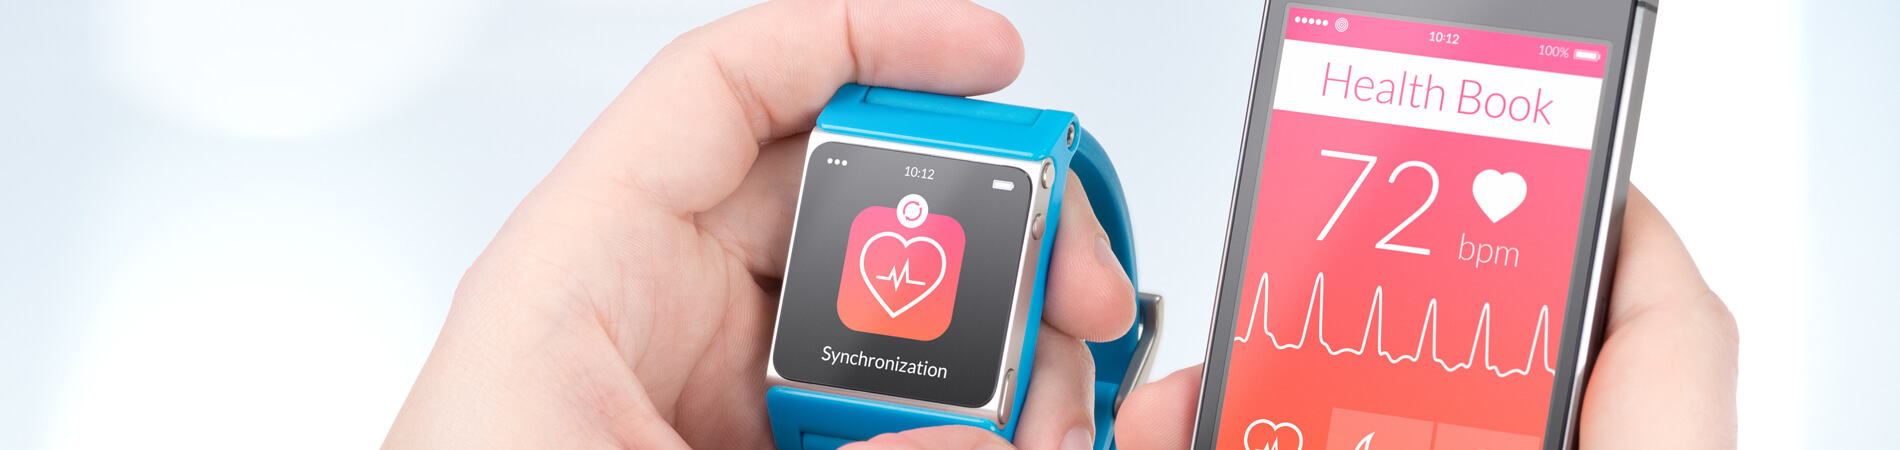 Wearable technology represented through a phone and a smart watch